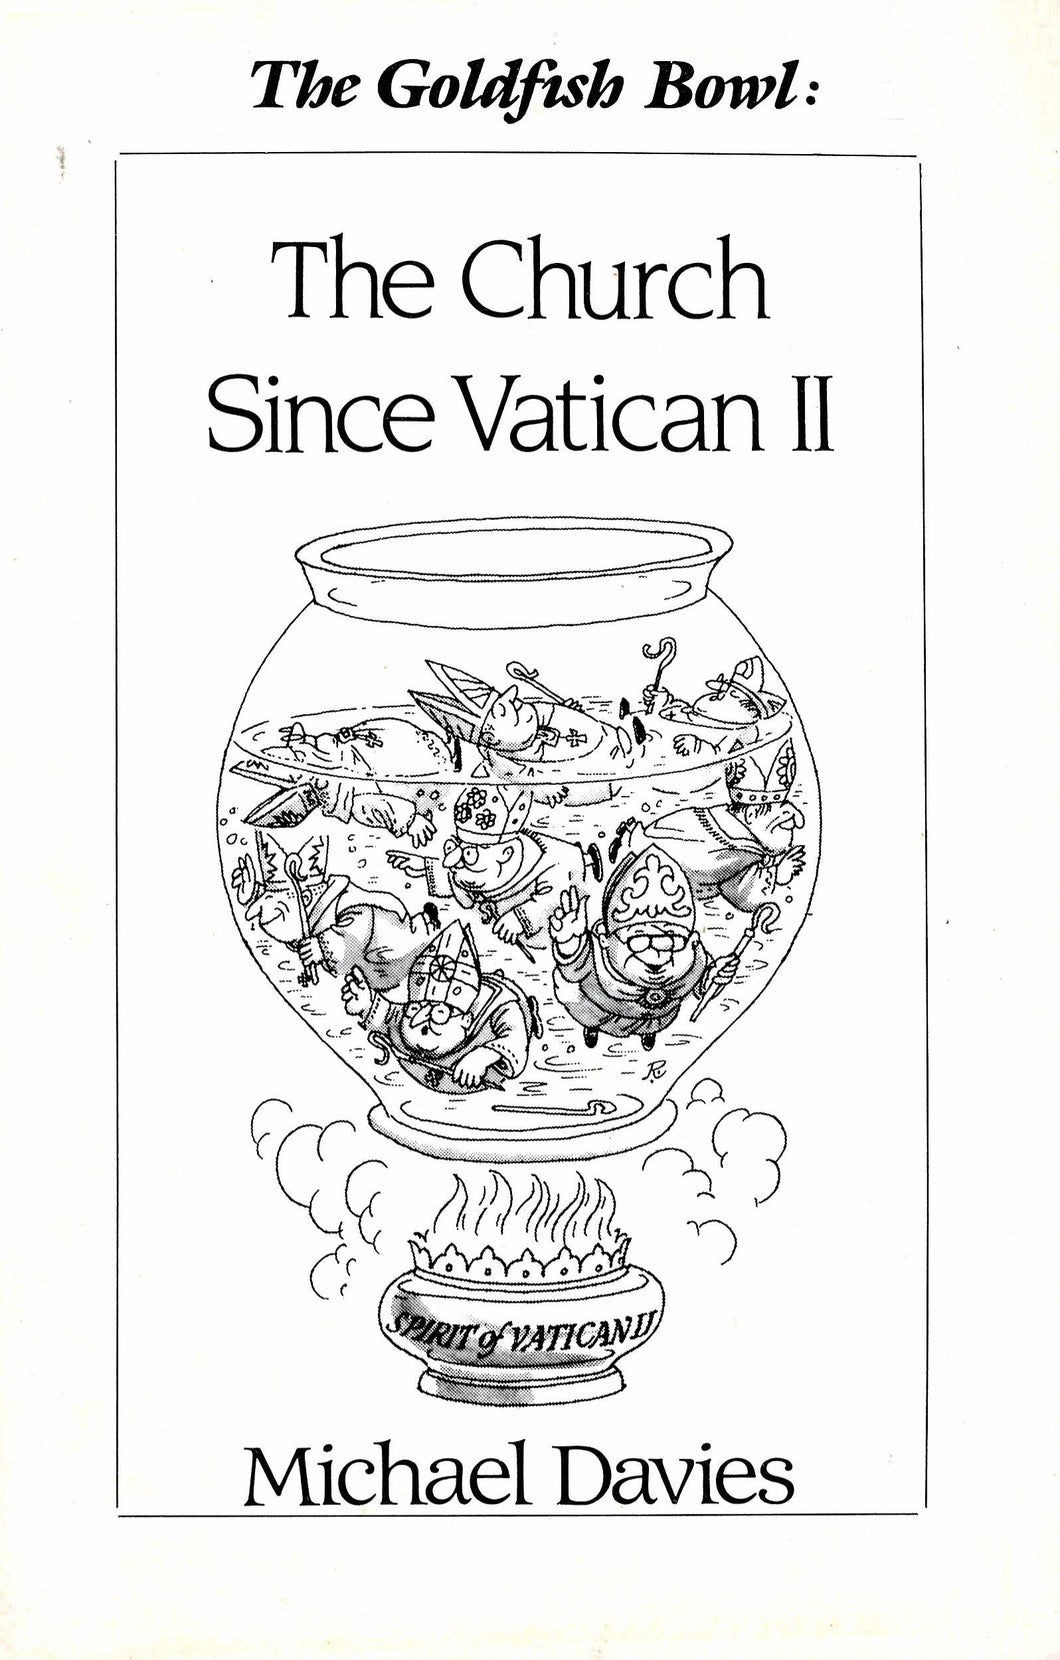 The Goldfish Bowl: The Church Since Vatican II